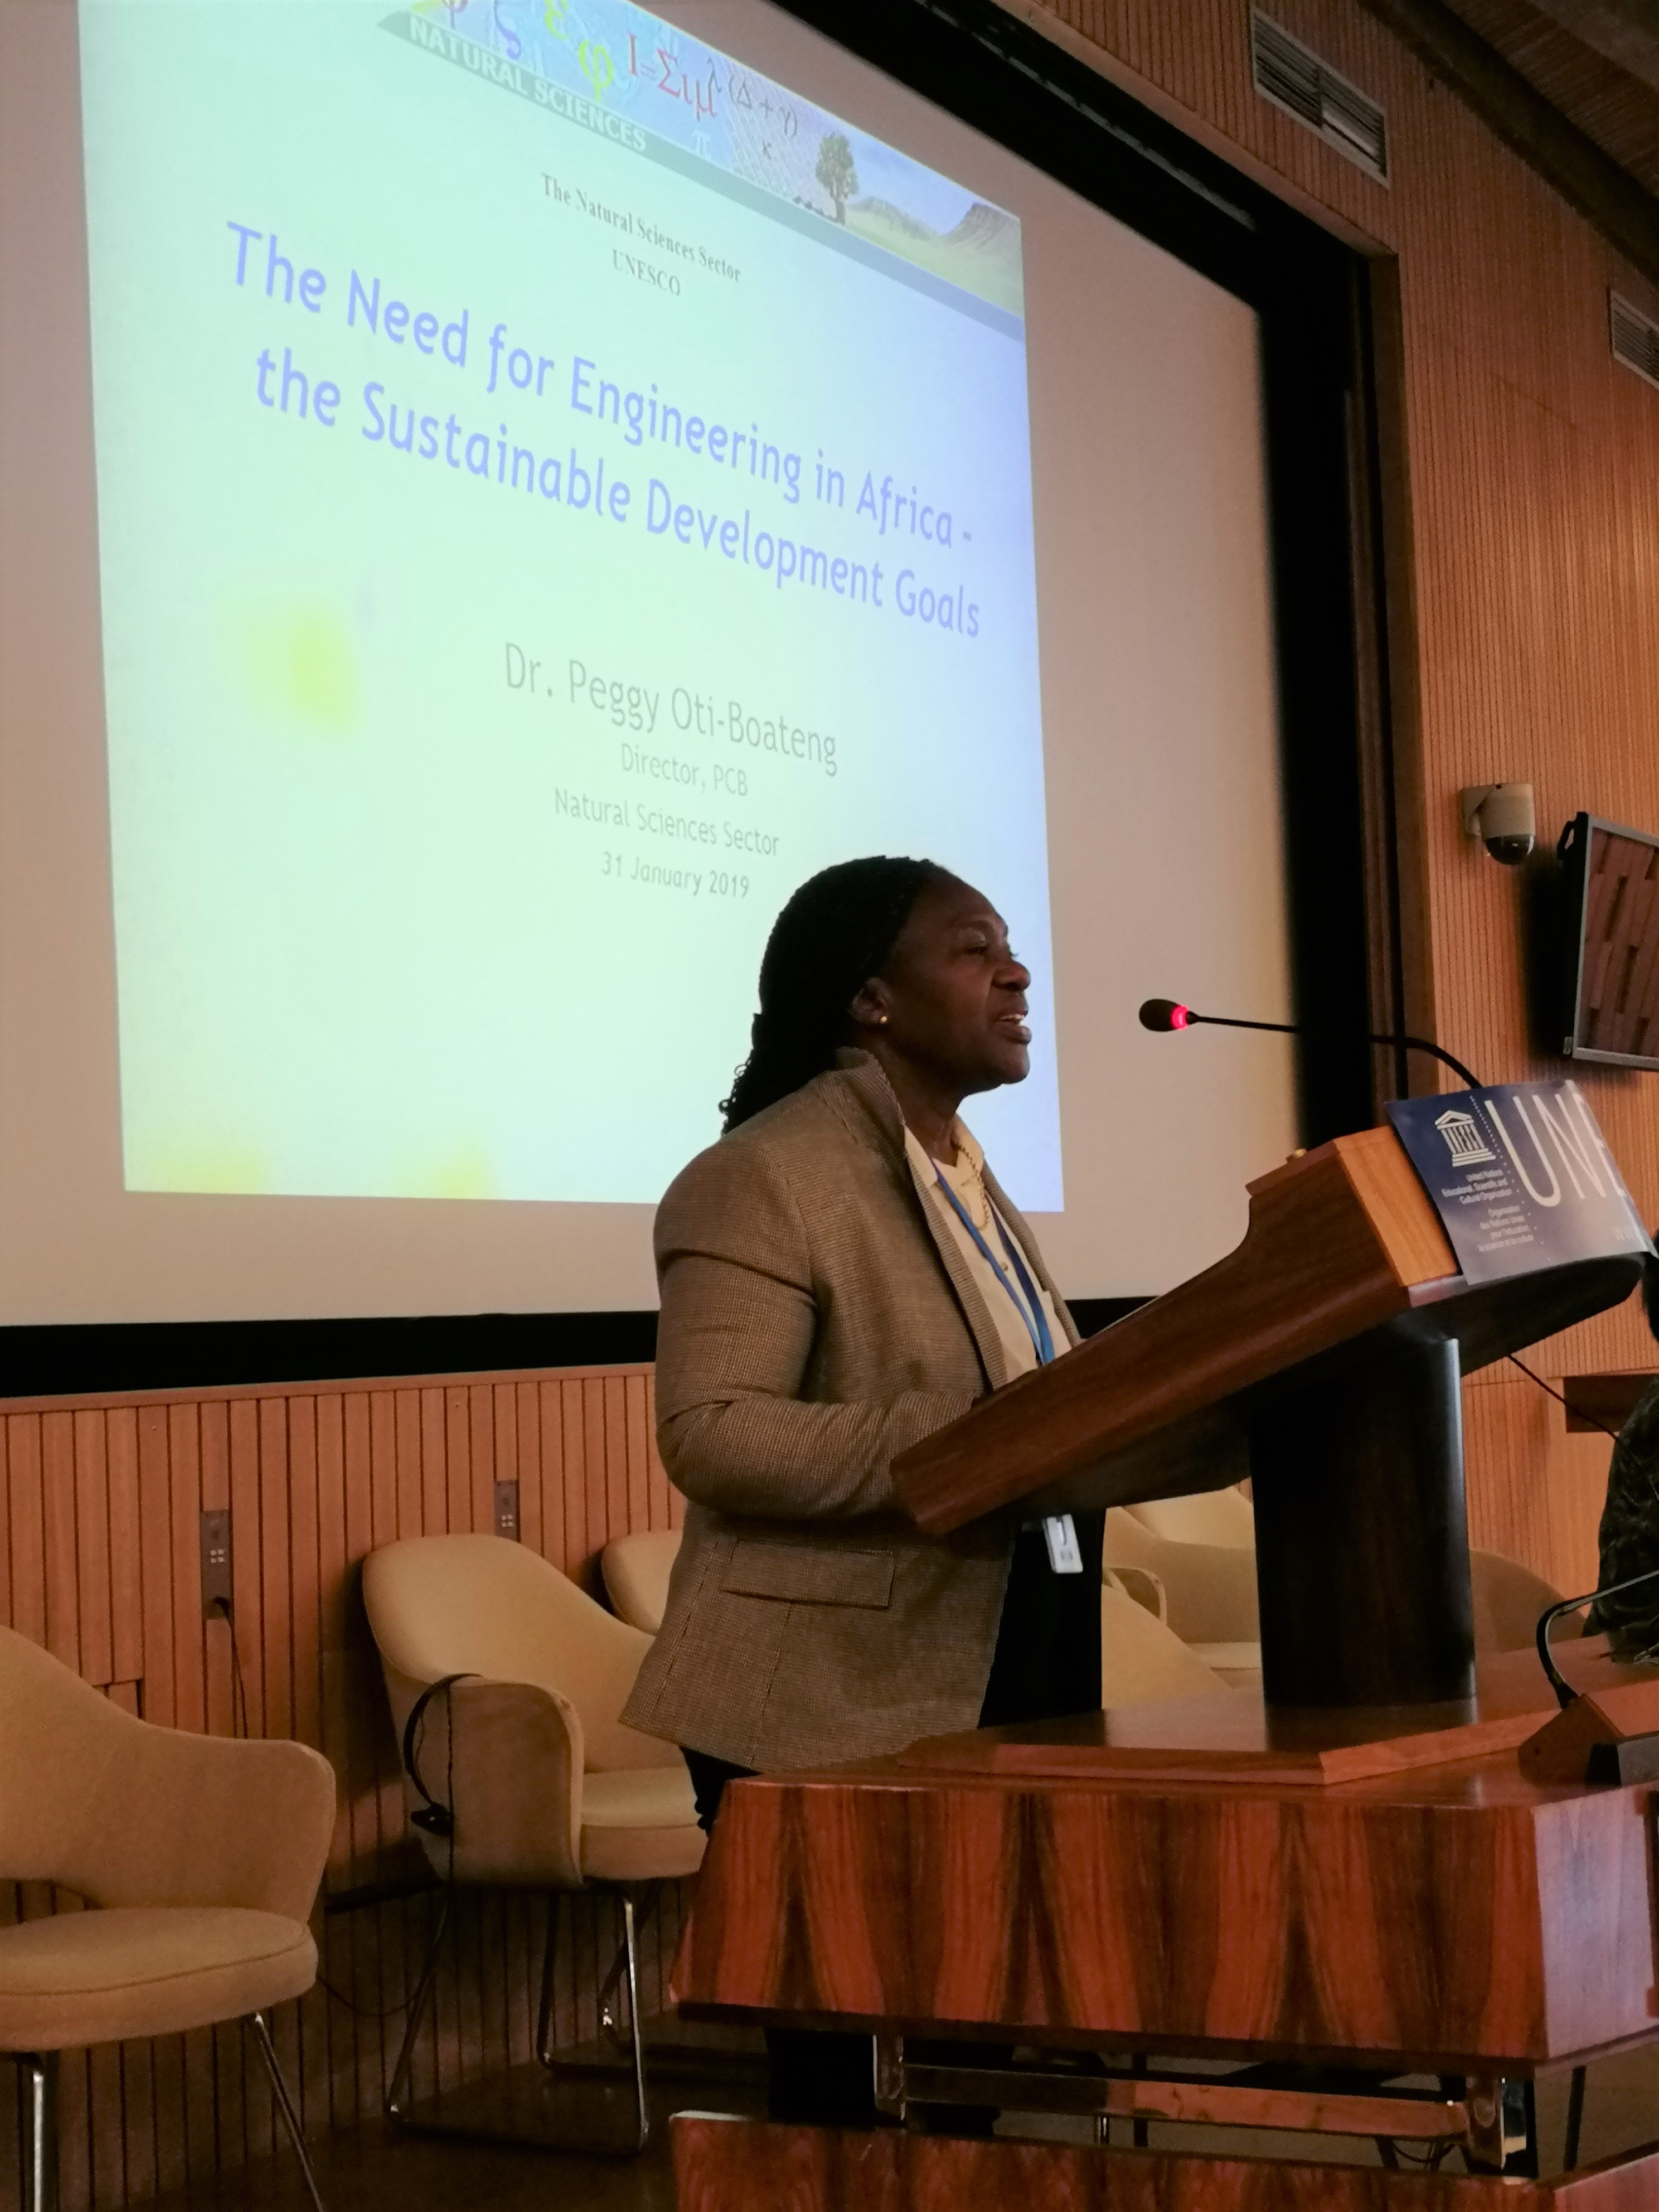 Dr. Peggy Oti-Boateng, UNESCO Director Capacity Building for Sciences